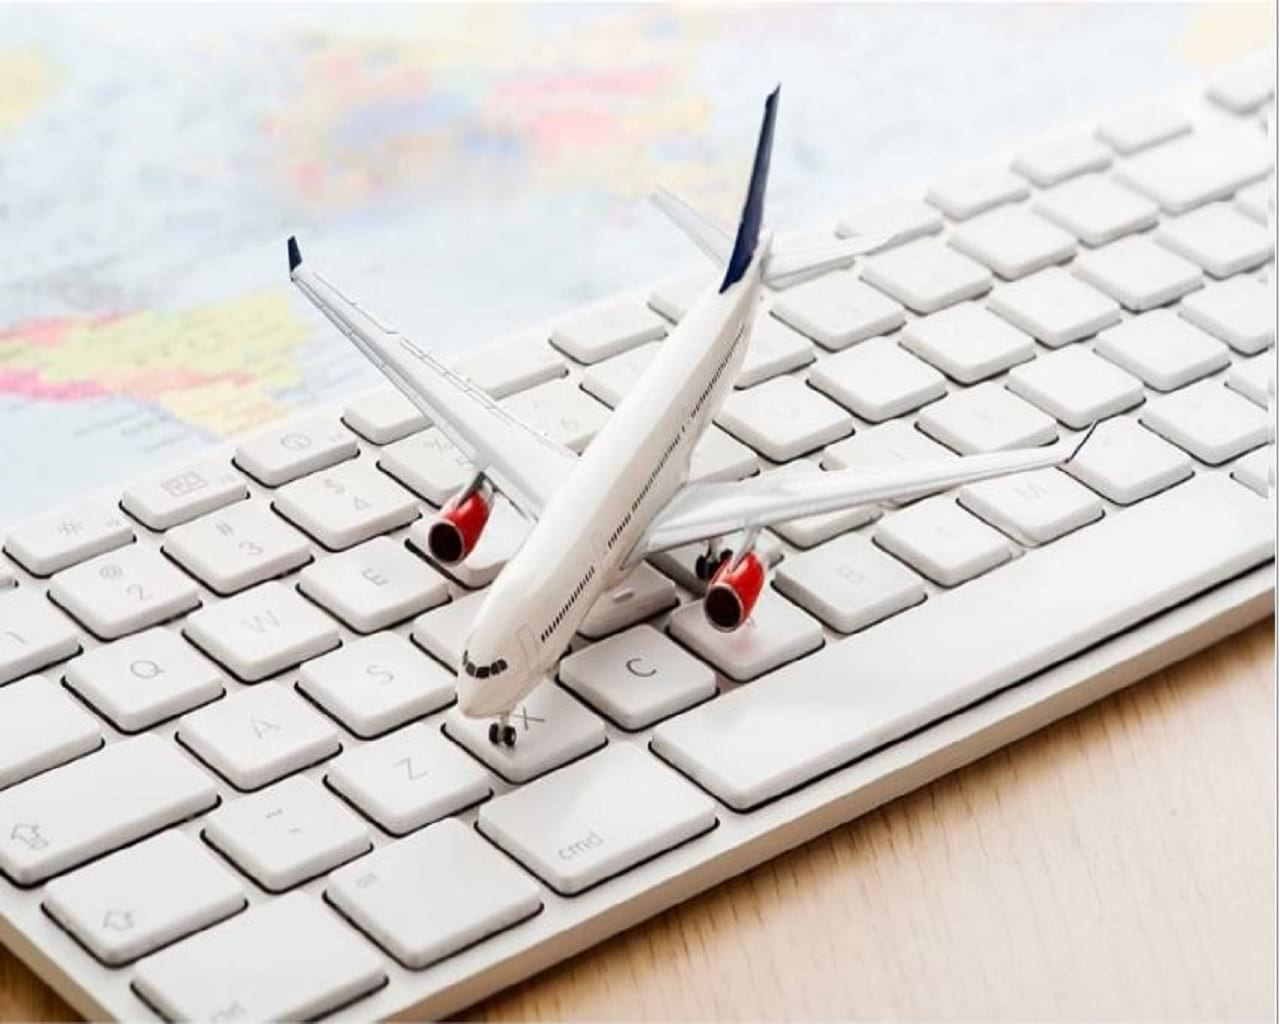 check flight ticket status online, check my flight ticket, check my trip online, flight tracker mobile, online hotel booking